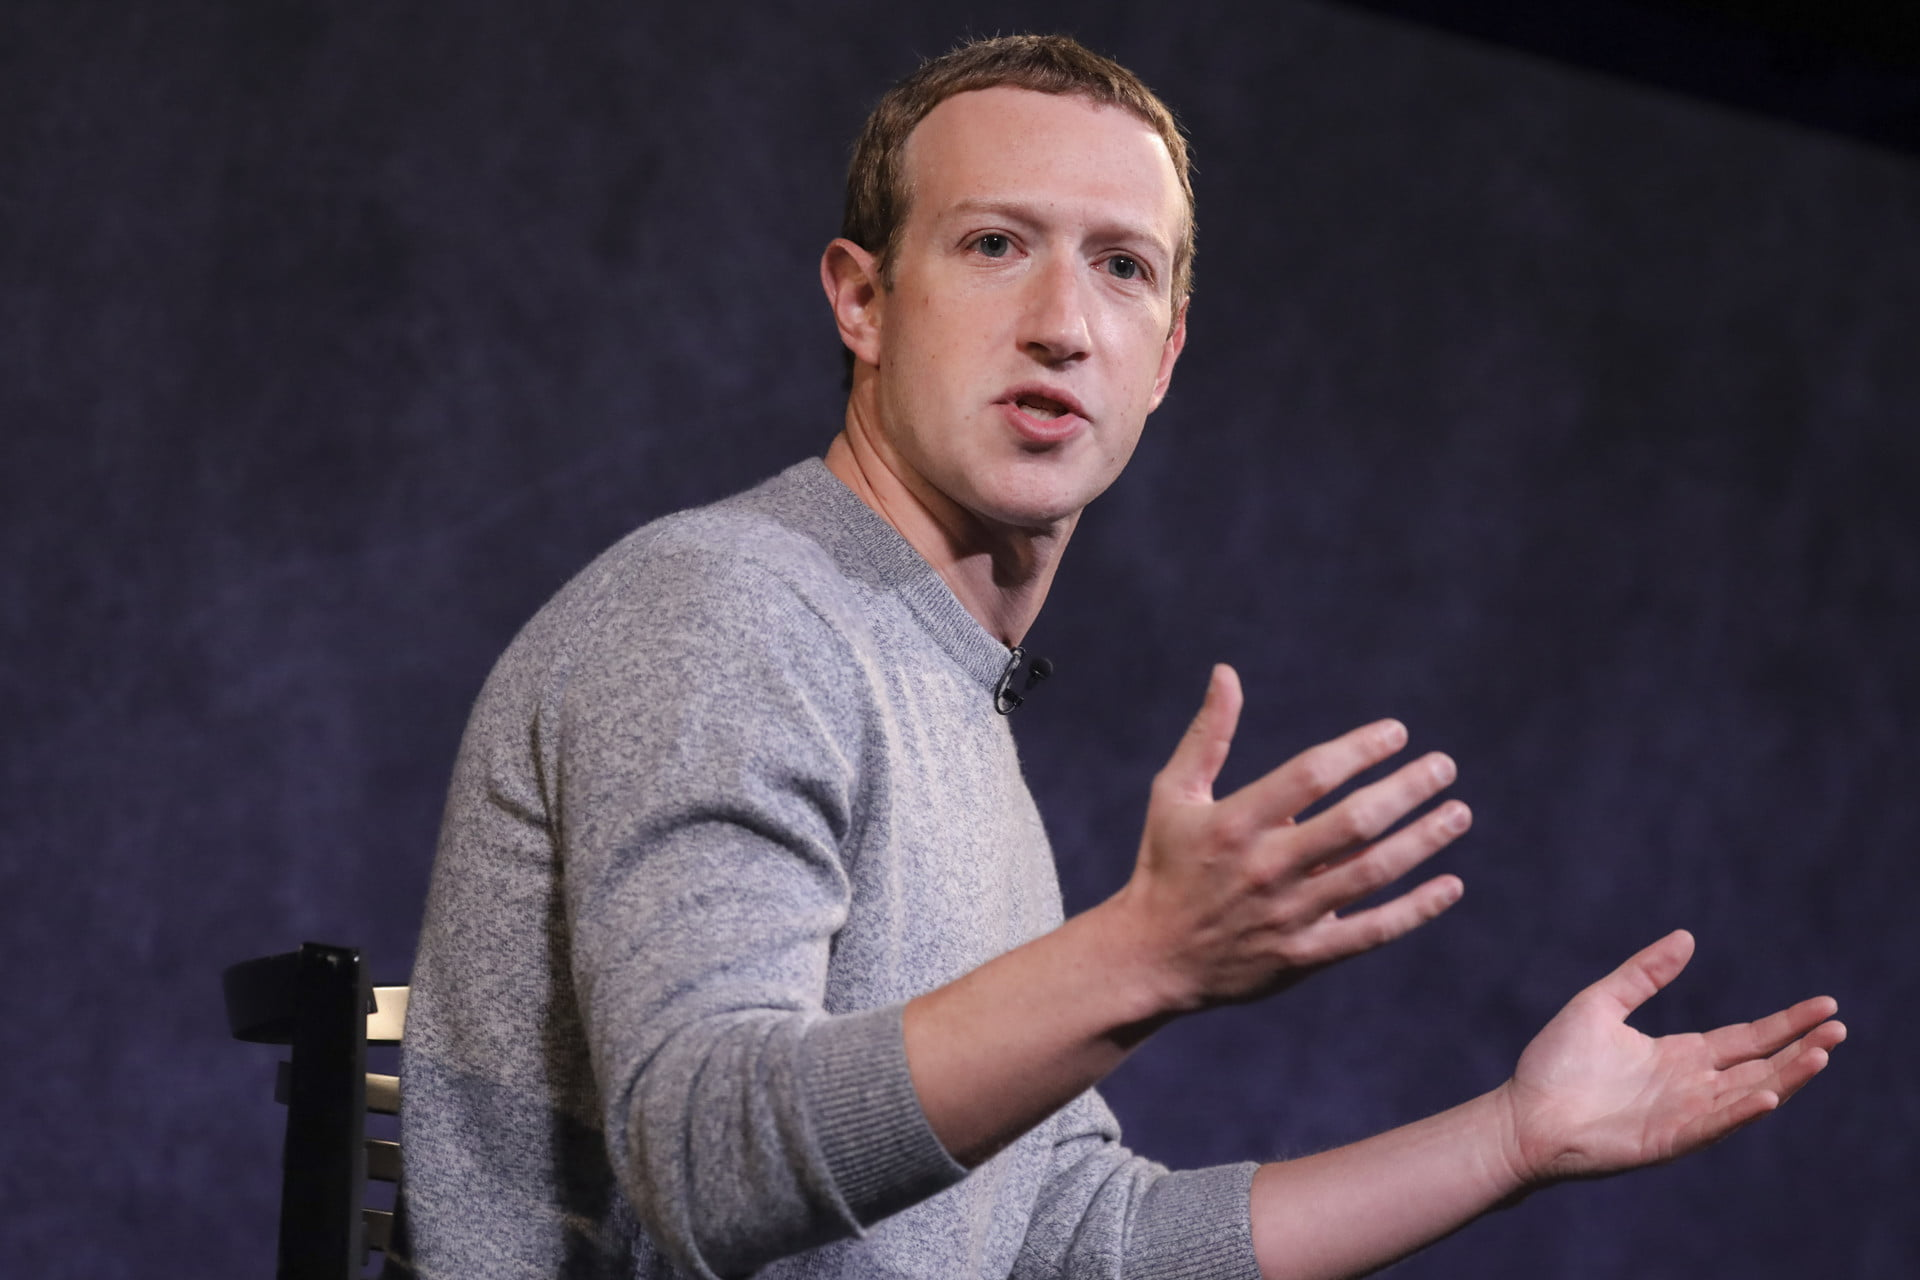 The FTC might finally do something about Facebook's social media monopoly